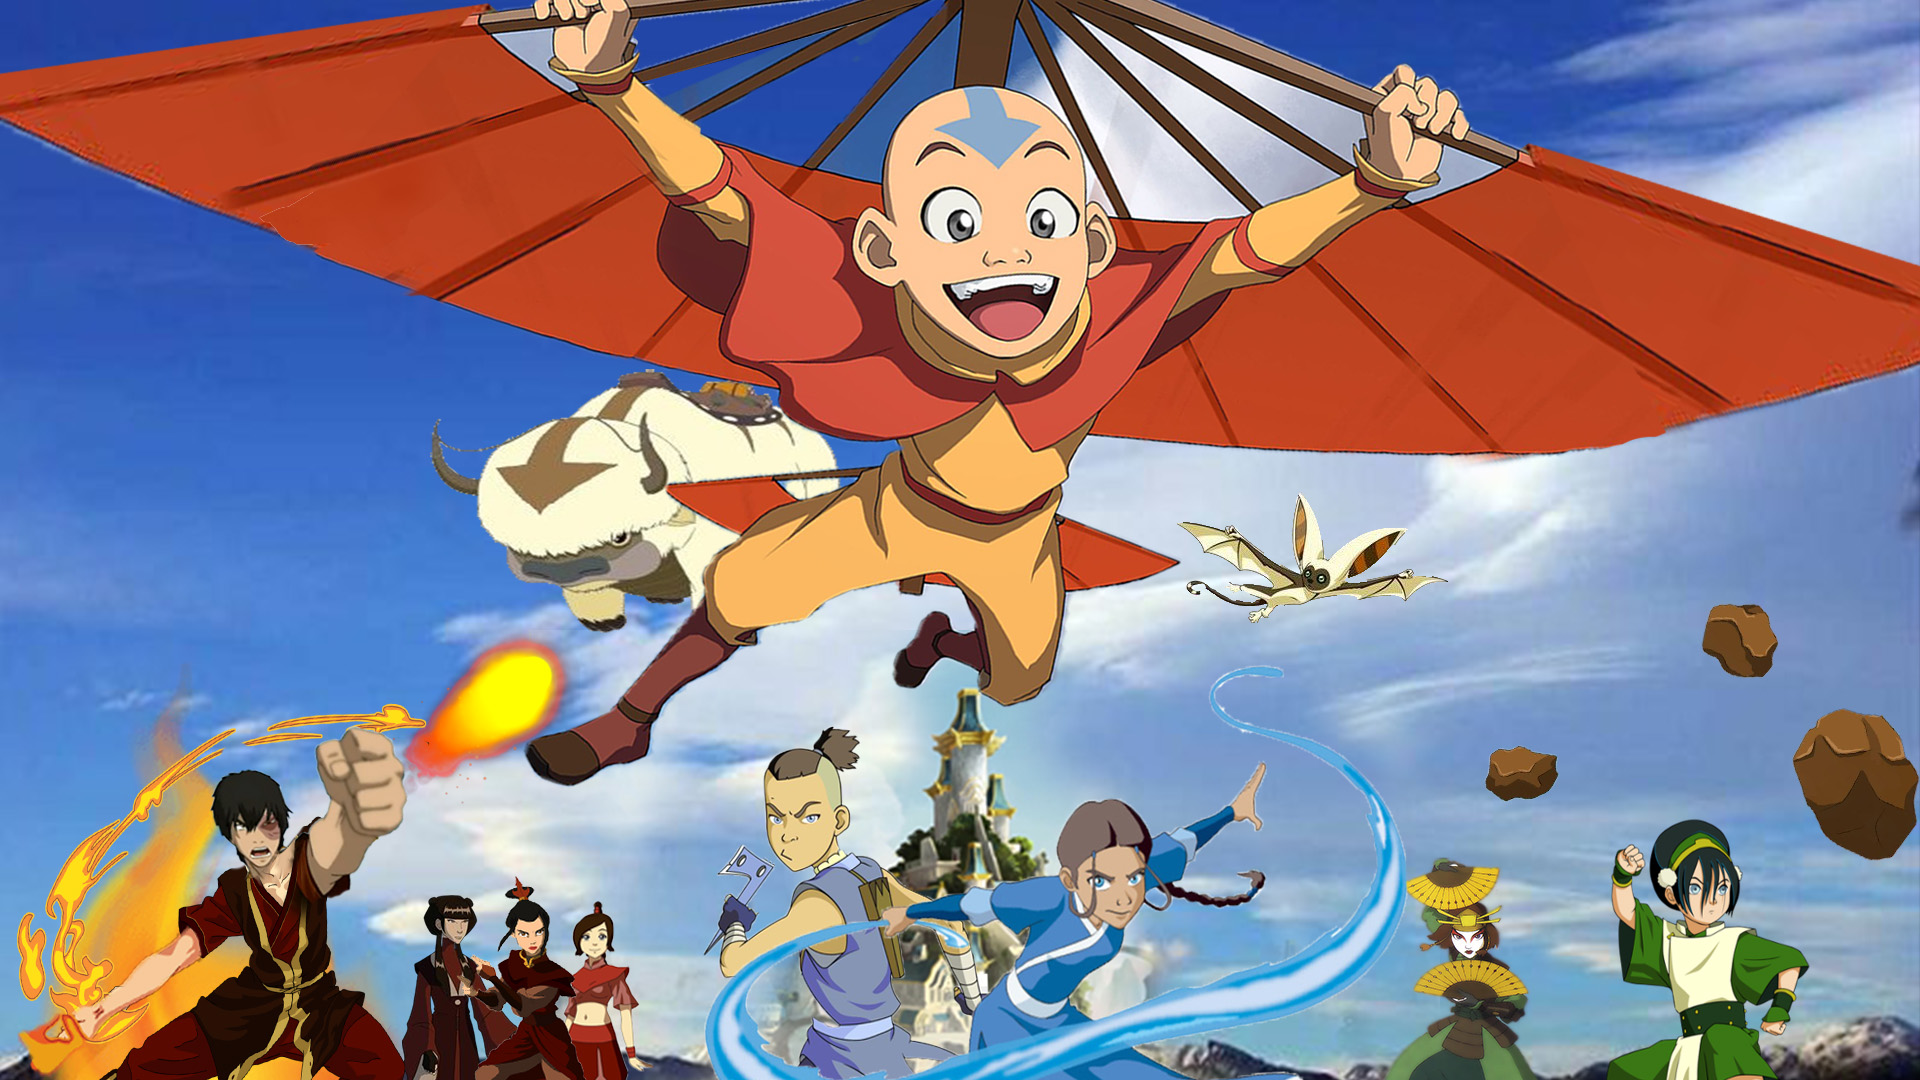 Binged 'Avatar: The Last Airbender' on Netflix? Use that knowledge in our  quiz – Film Daily